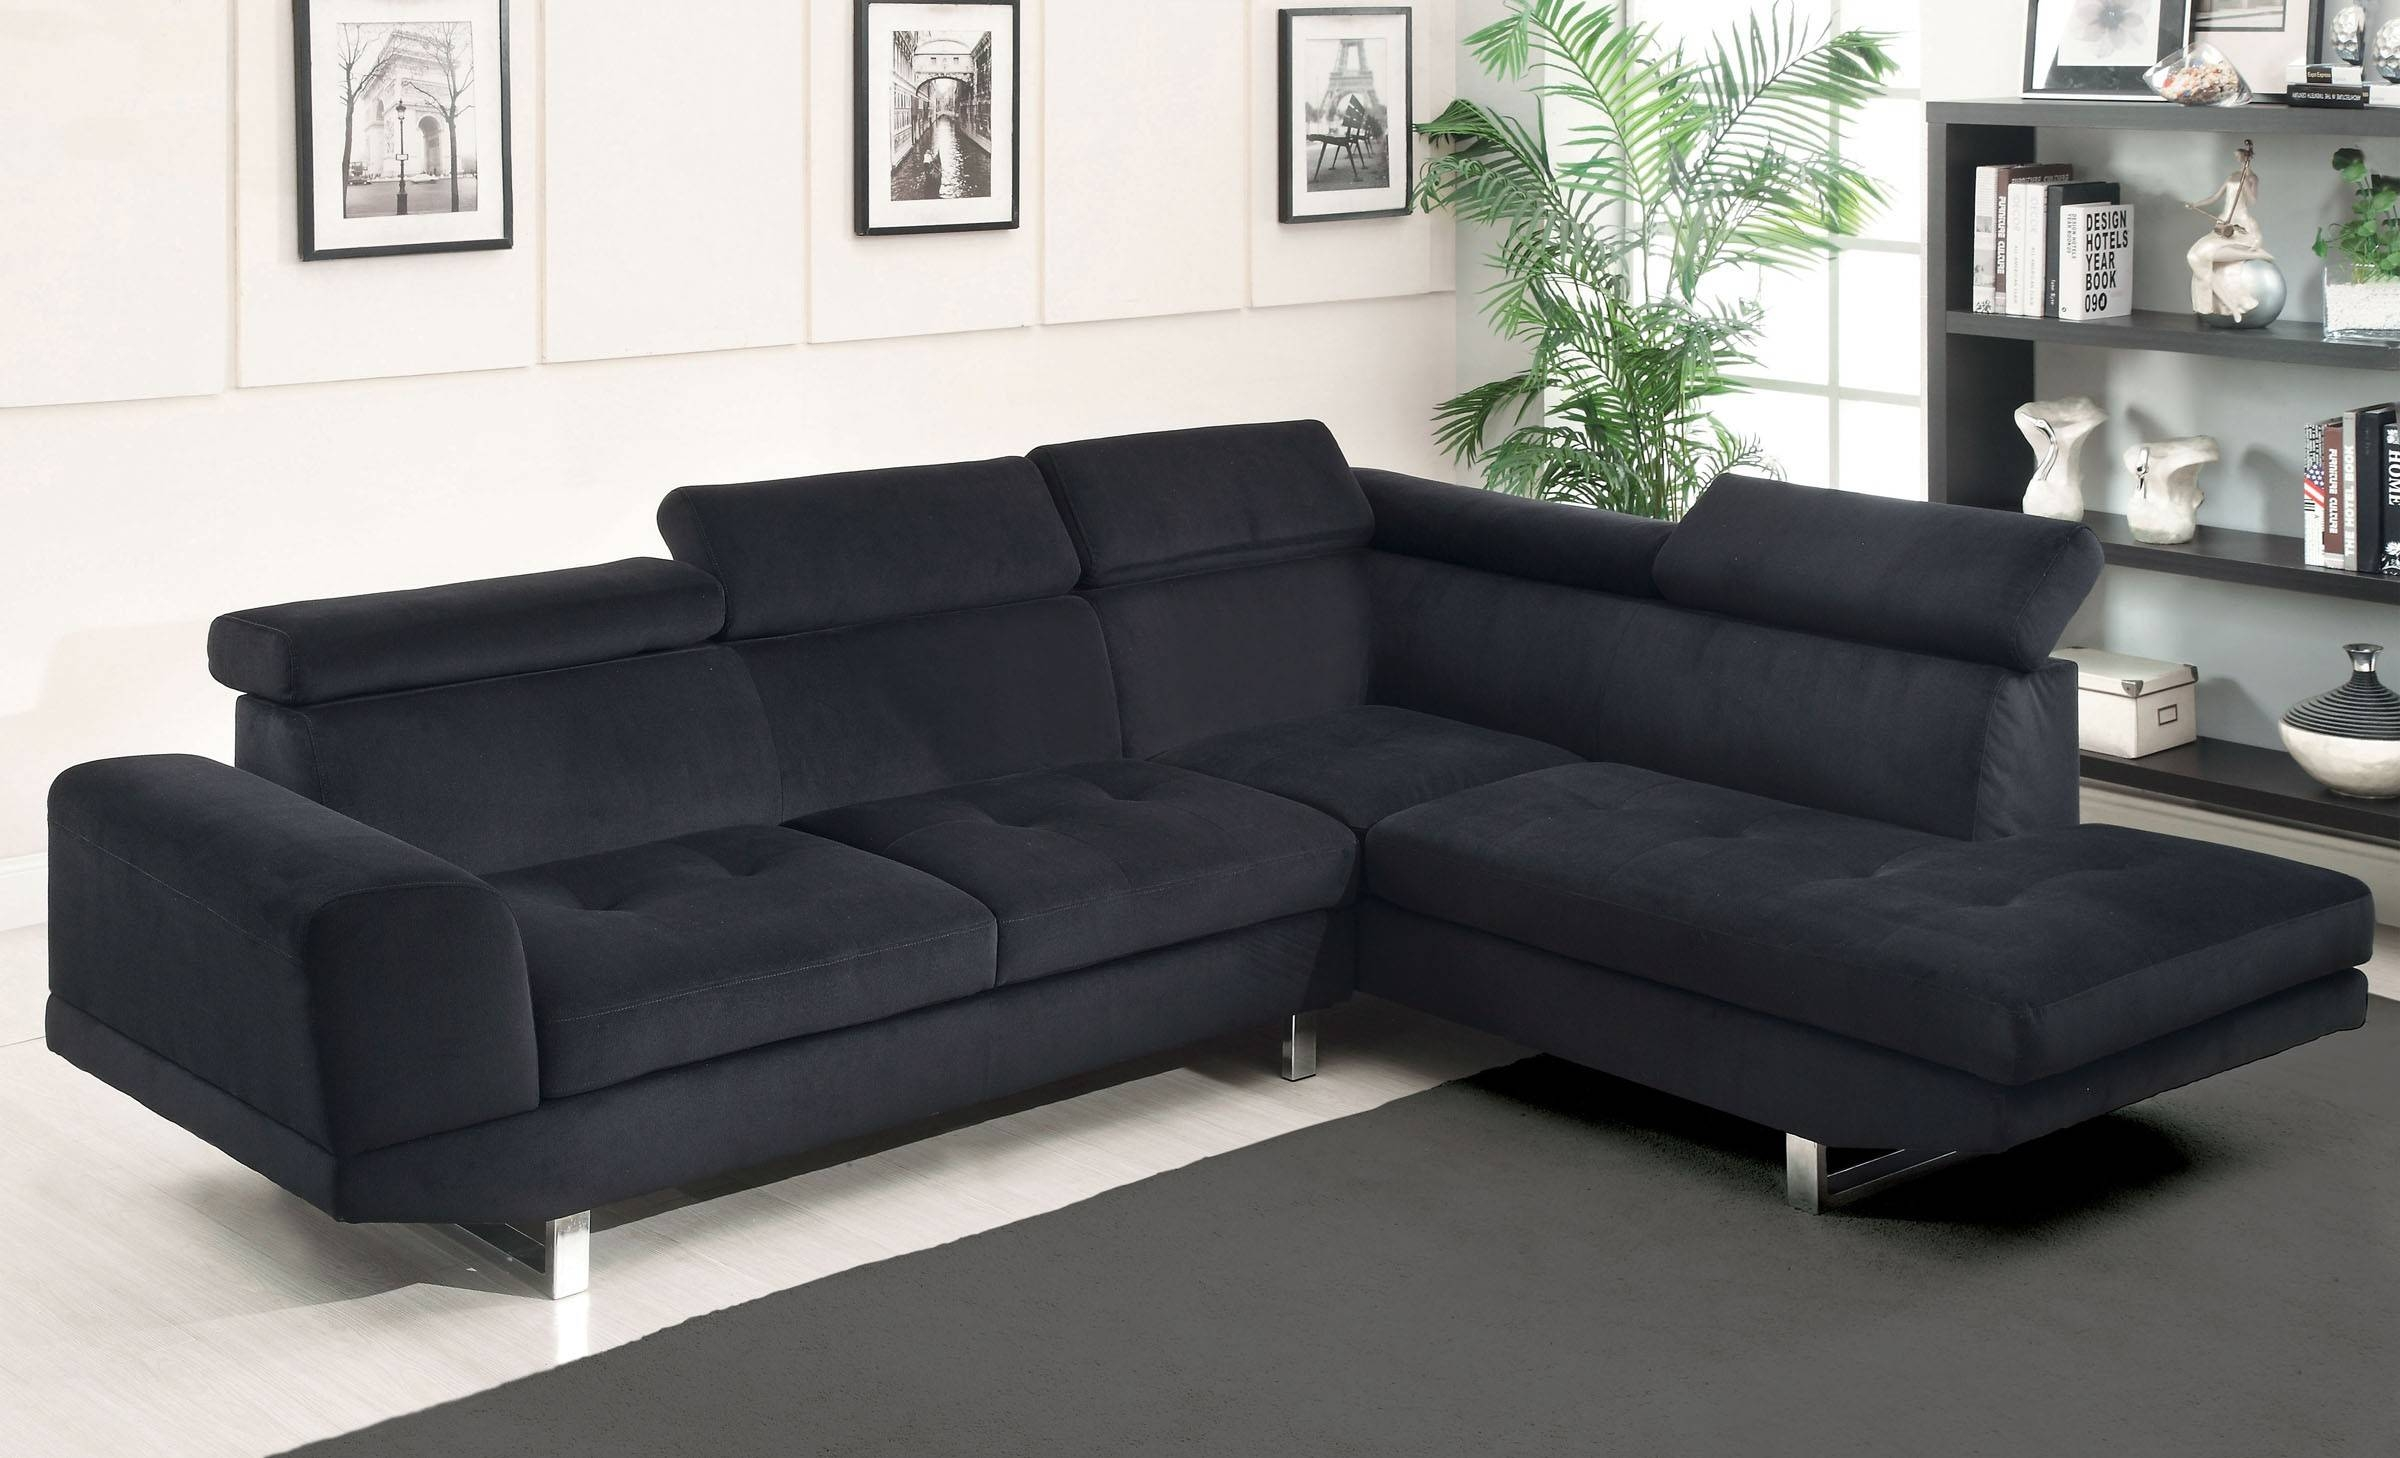 30 Best Collection of L Shaped Fabric Sofas